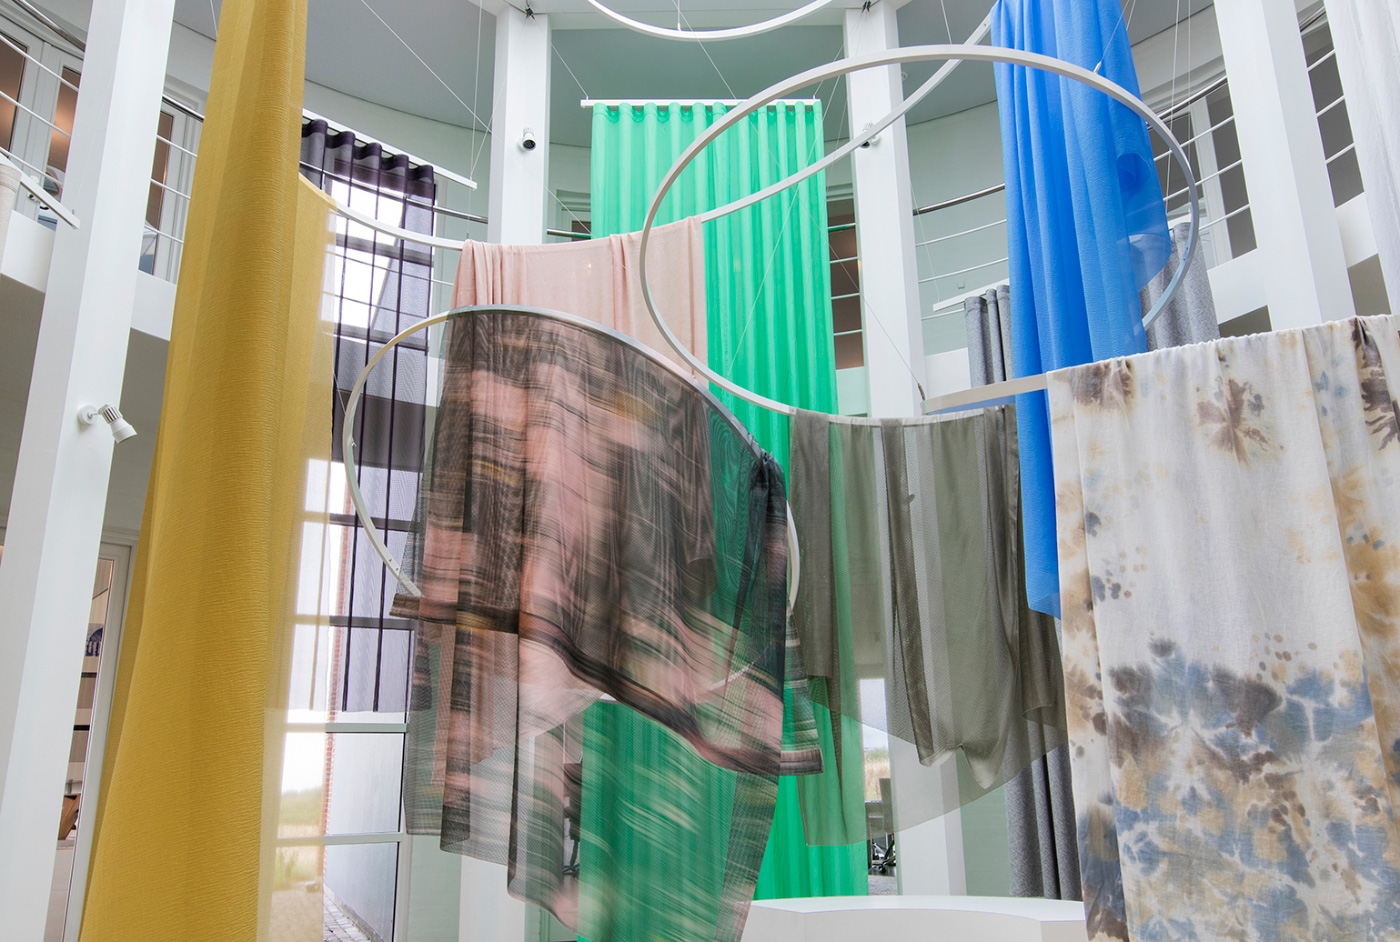 Different fabrics from Kvadrat suspended from metal rings